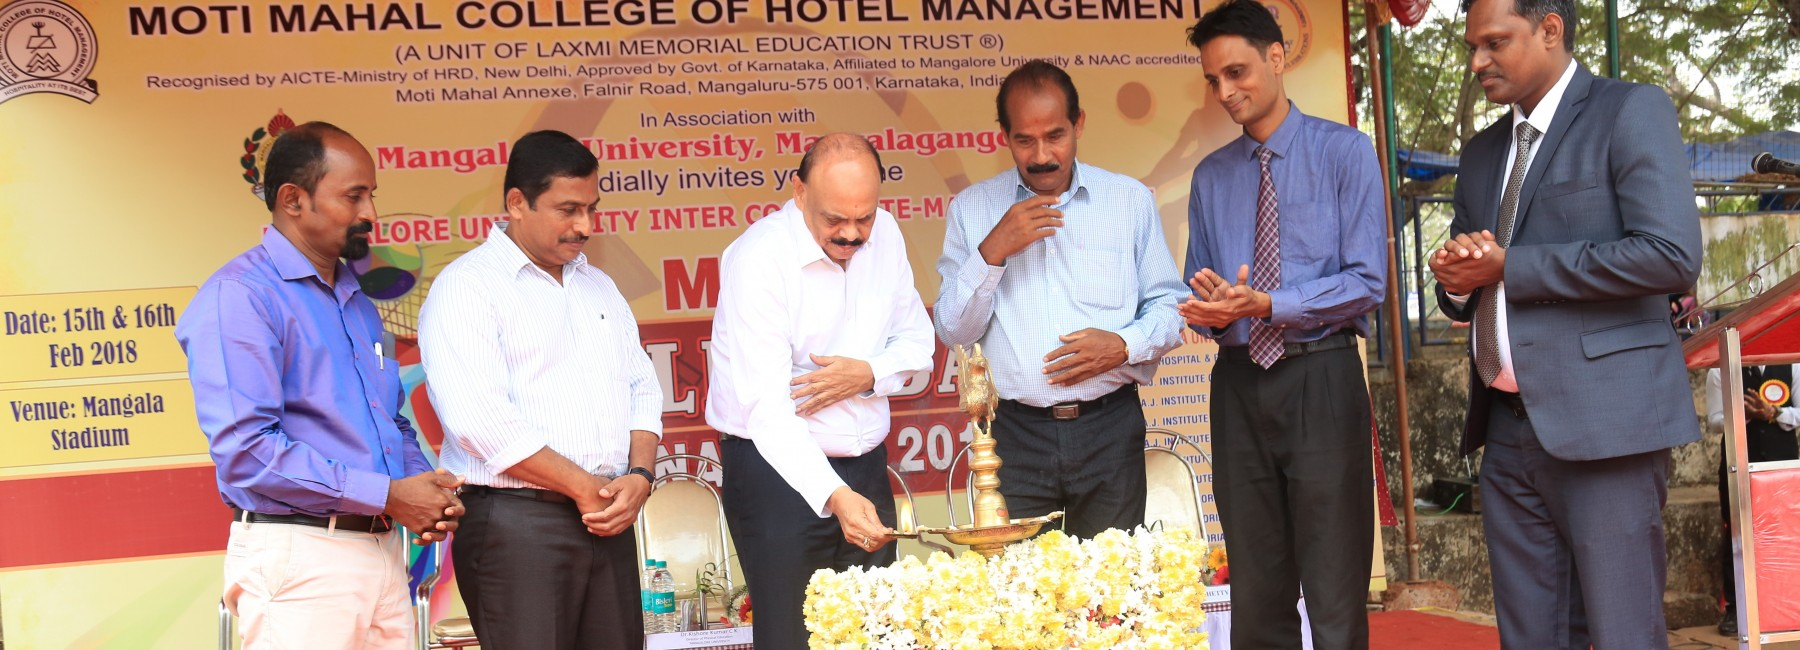 motimahal college of hotel management